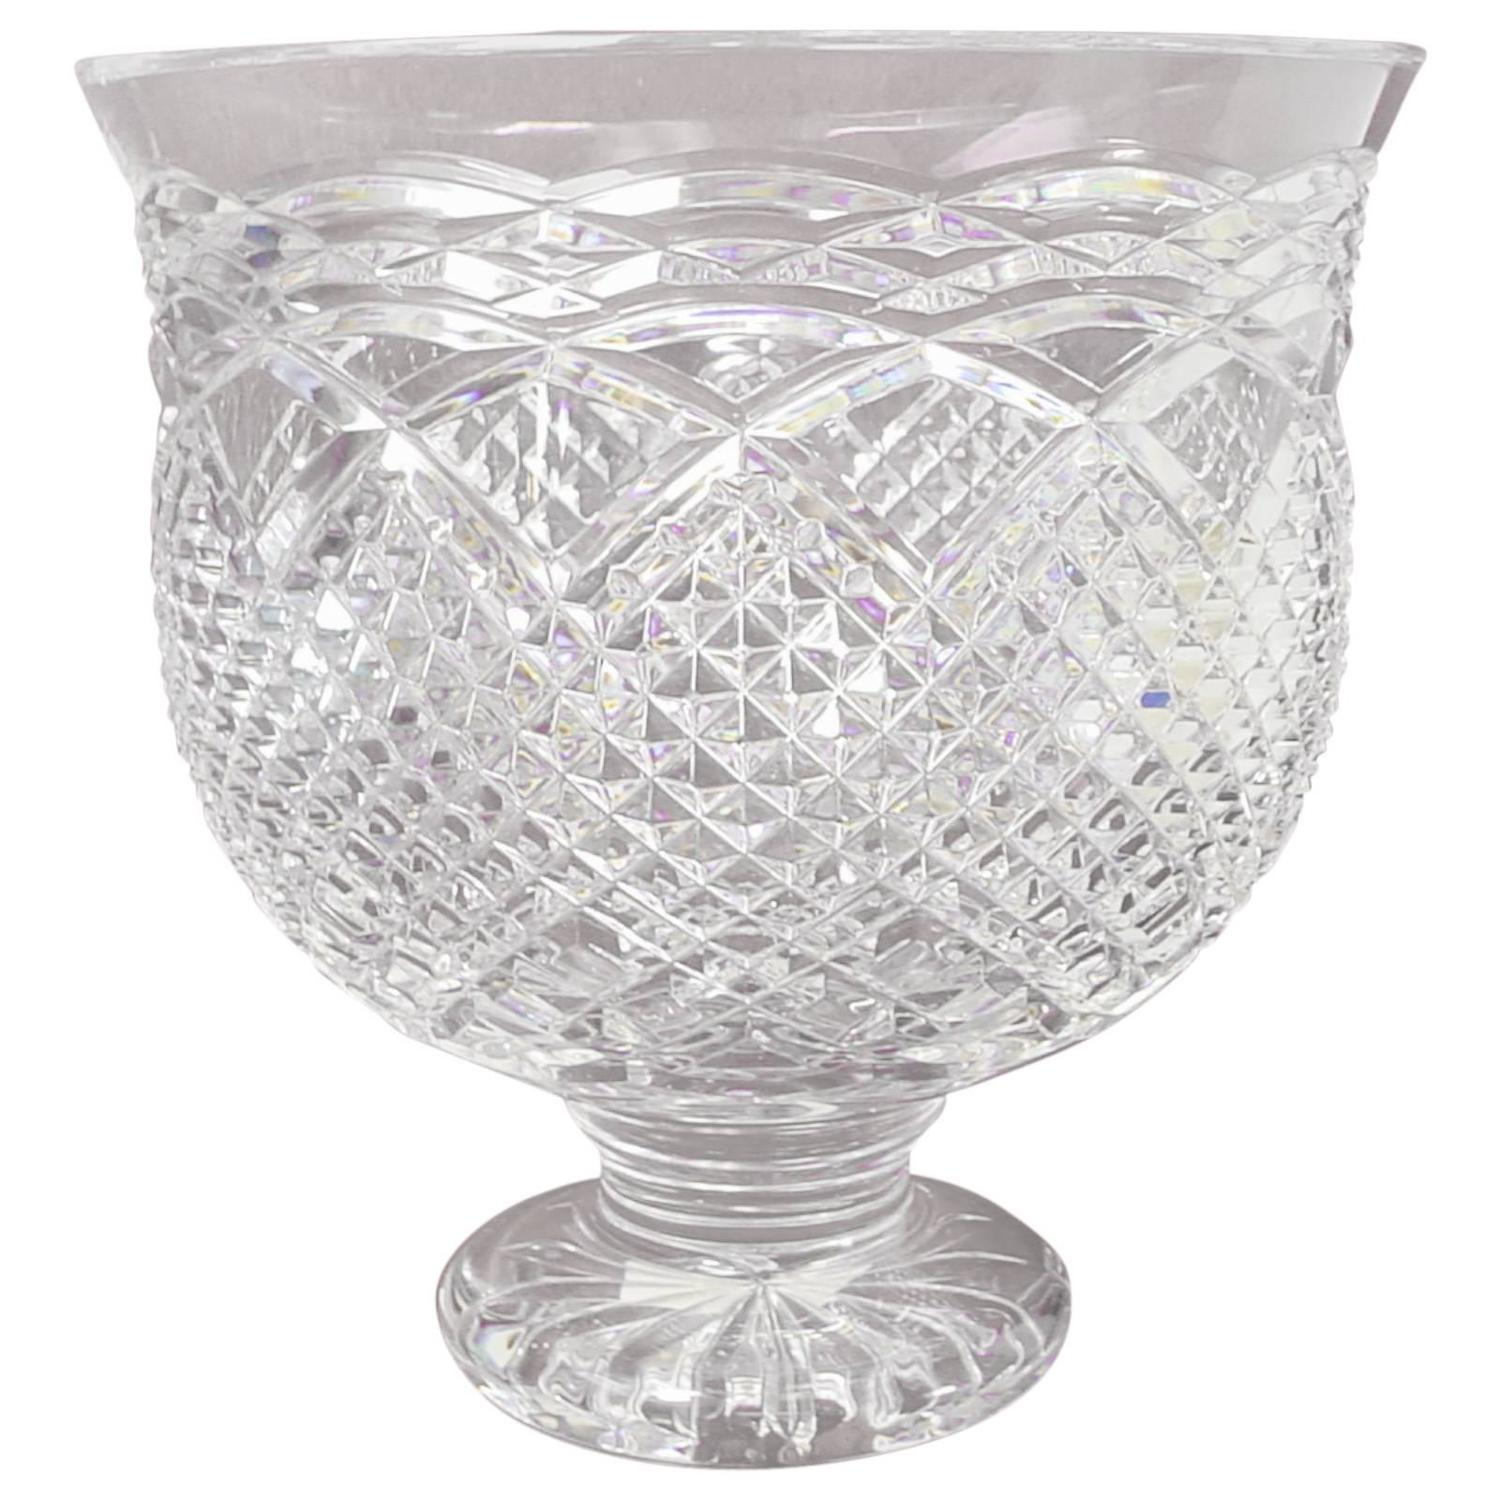 Waterford crystal designers gallery collection tom brennan rainbow waterford crystal designers gallery collection tom brennan rainbow trifle bowl at 1stdibs reviewsmspy